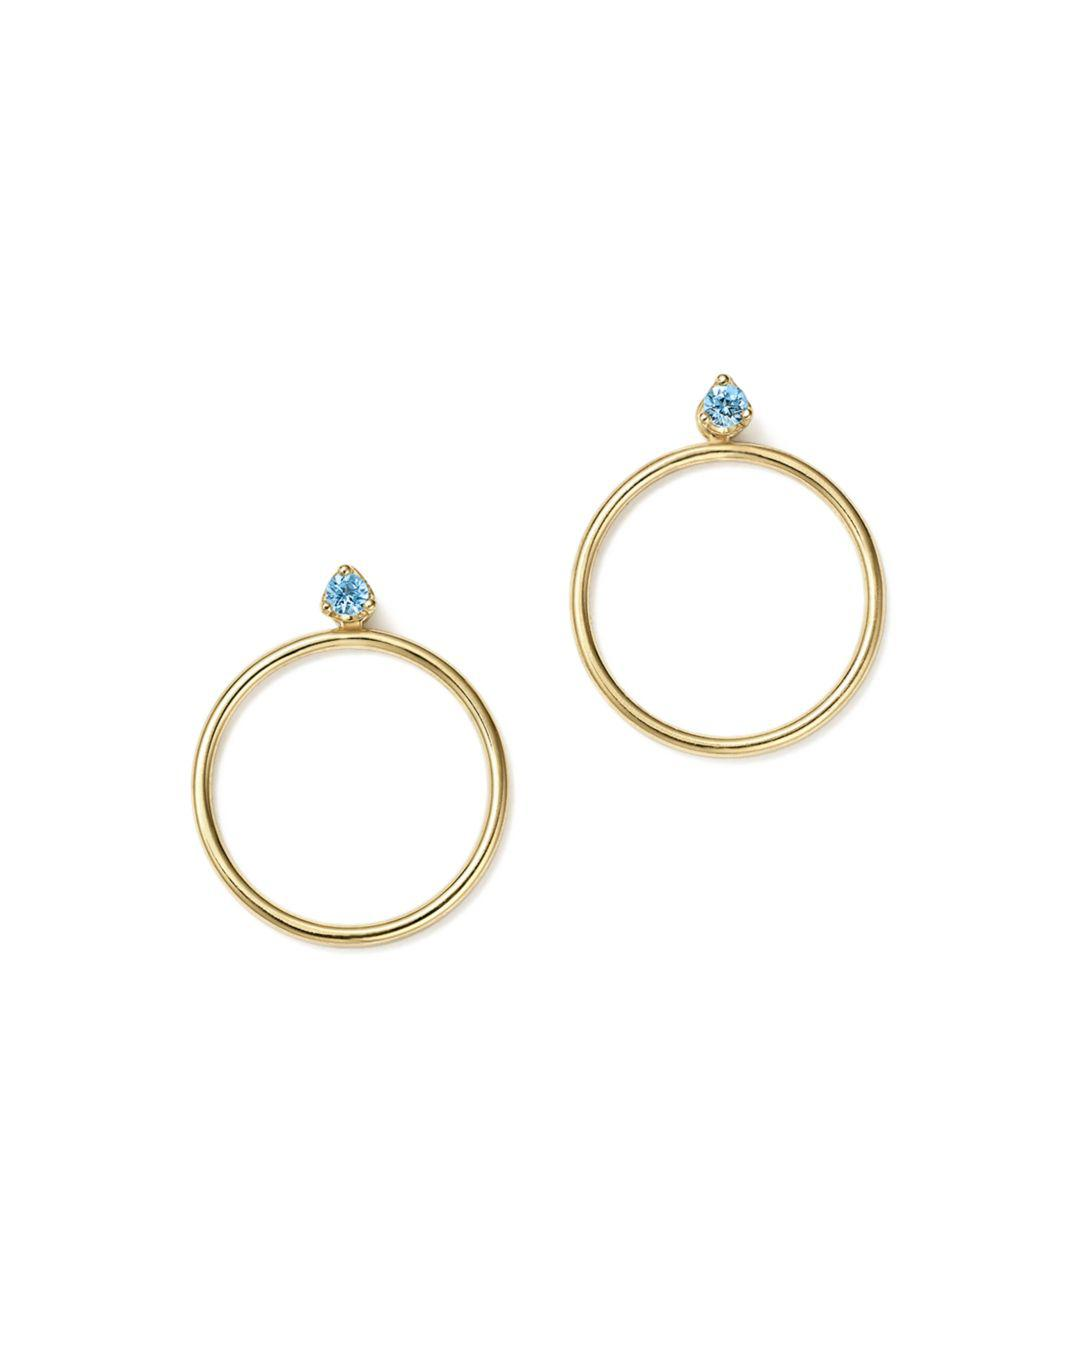 Zoe Chicco Women S Blue 14k Yellow Gold Hoop Earring Jackets With Aquamarine